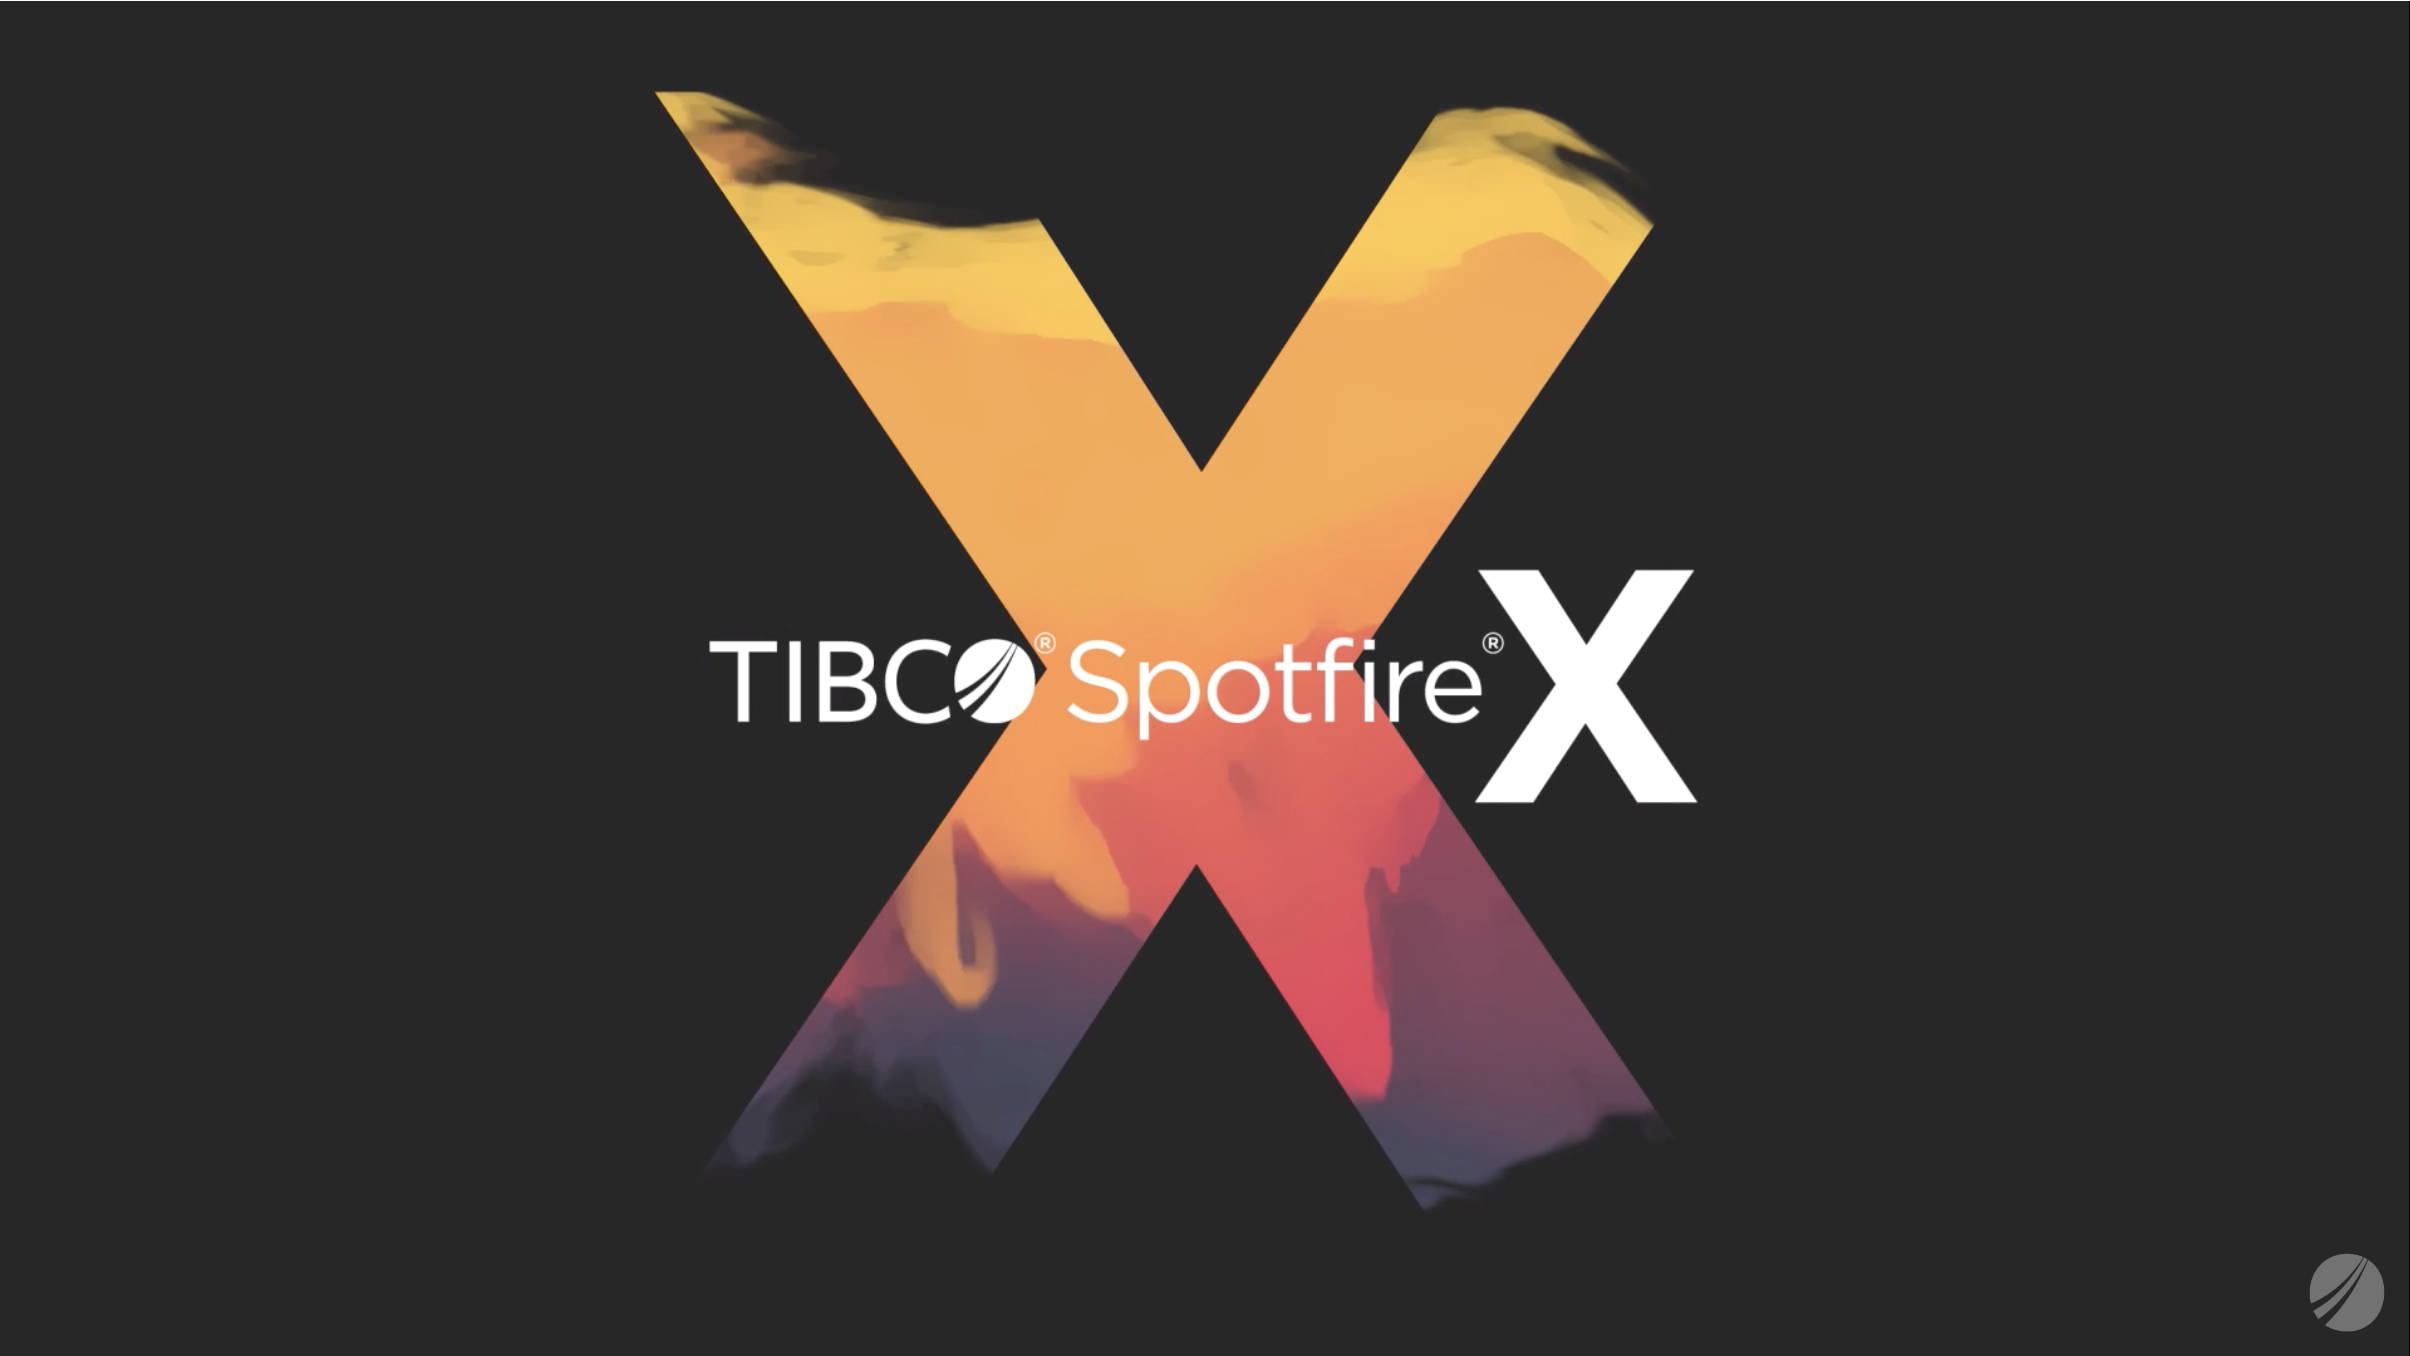 TIBCO Spotfire X: Now certified on Teradata Vantage.